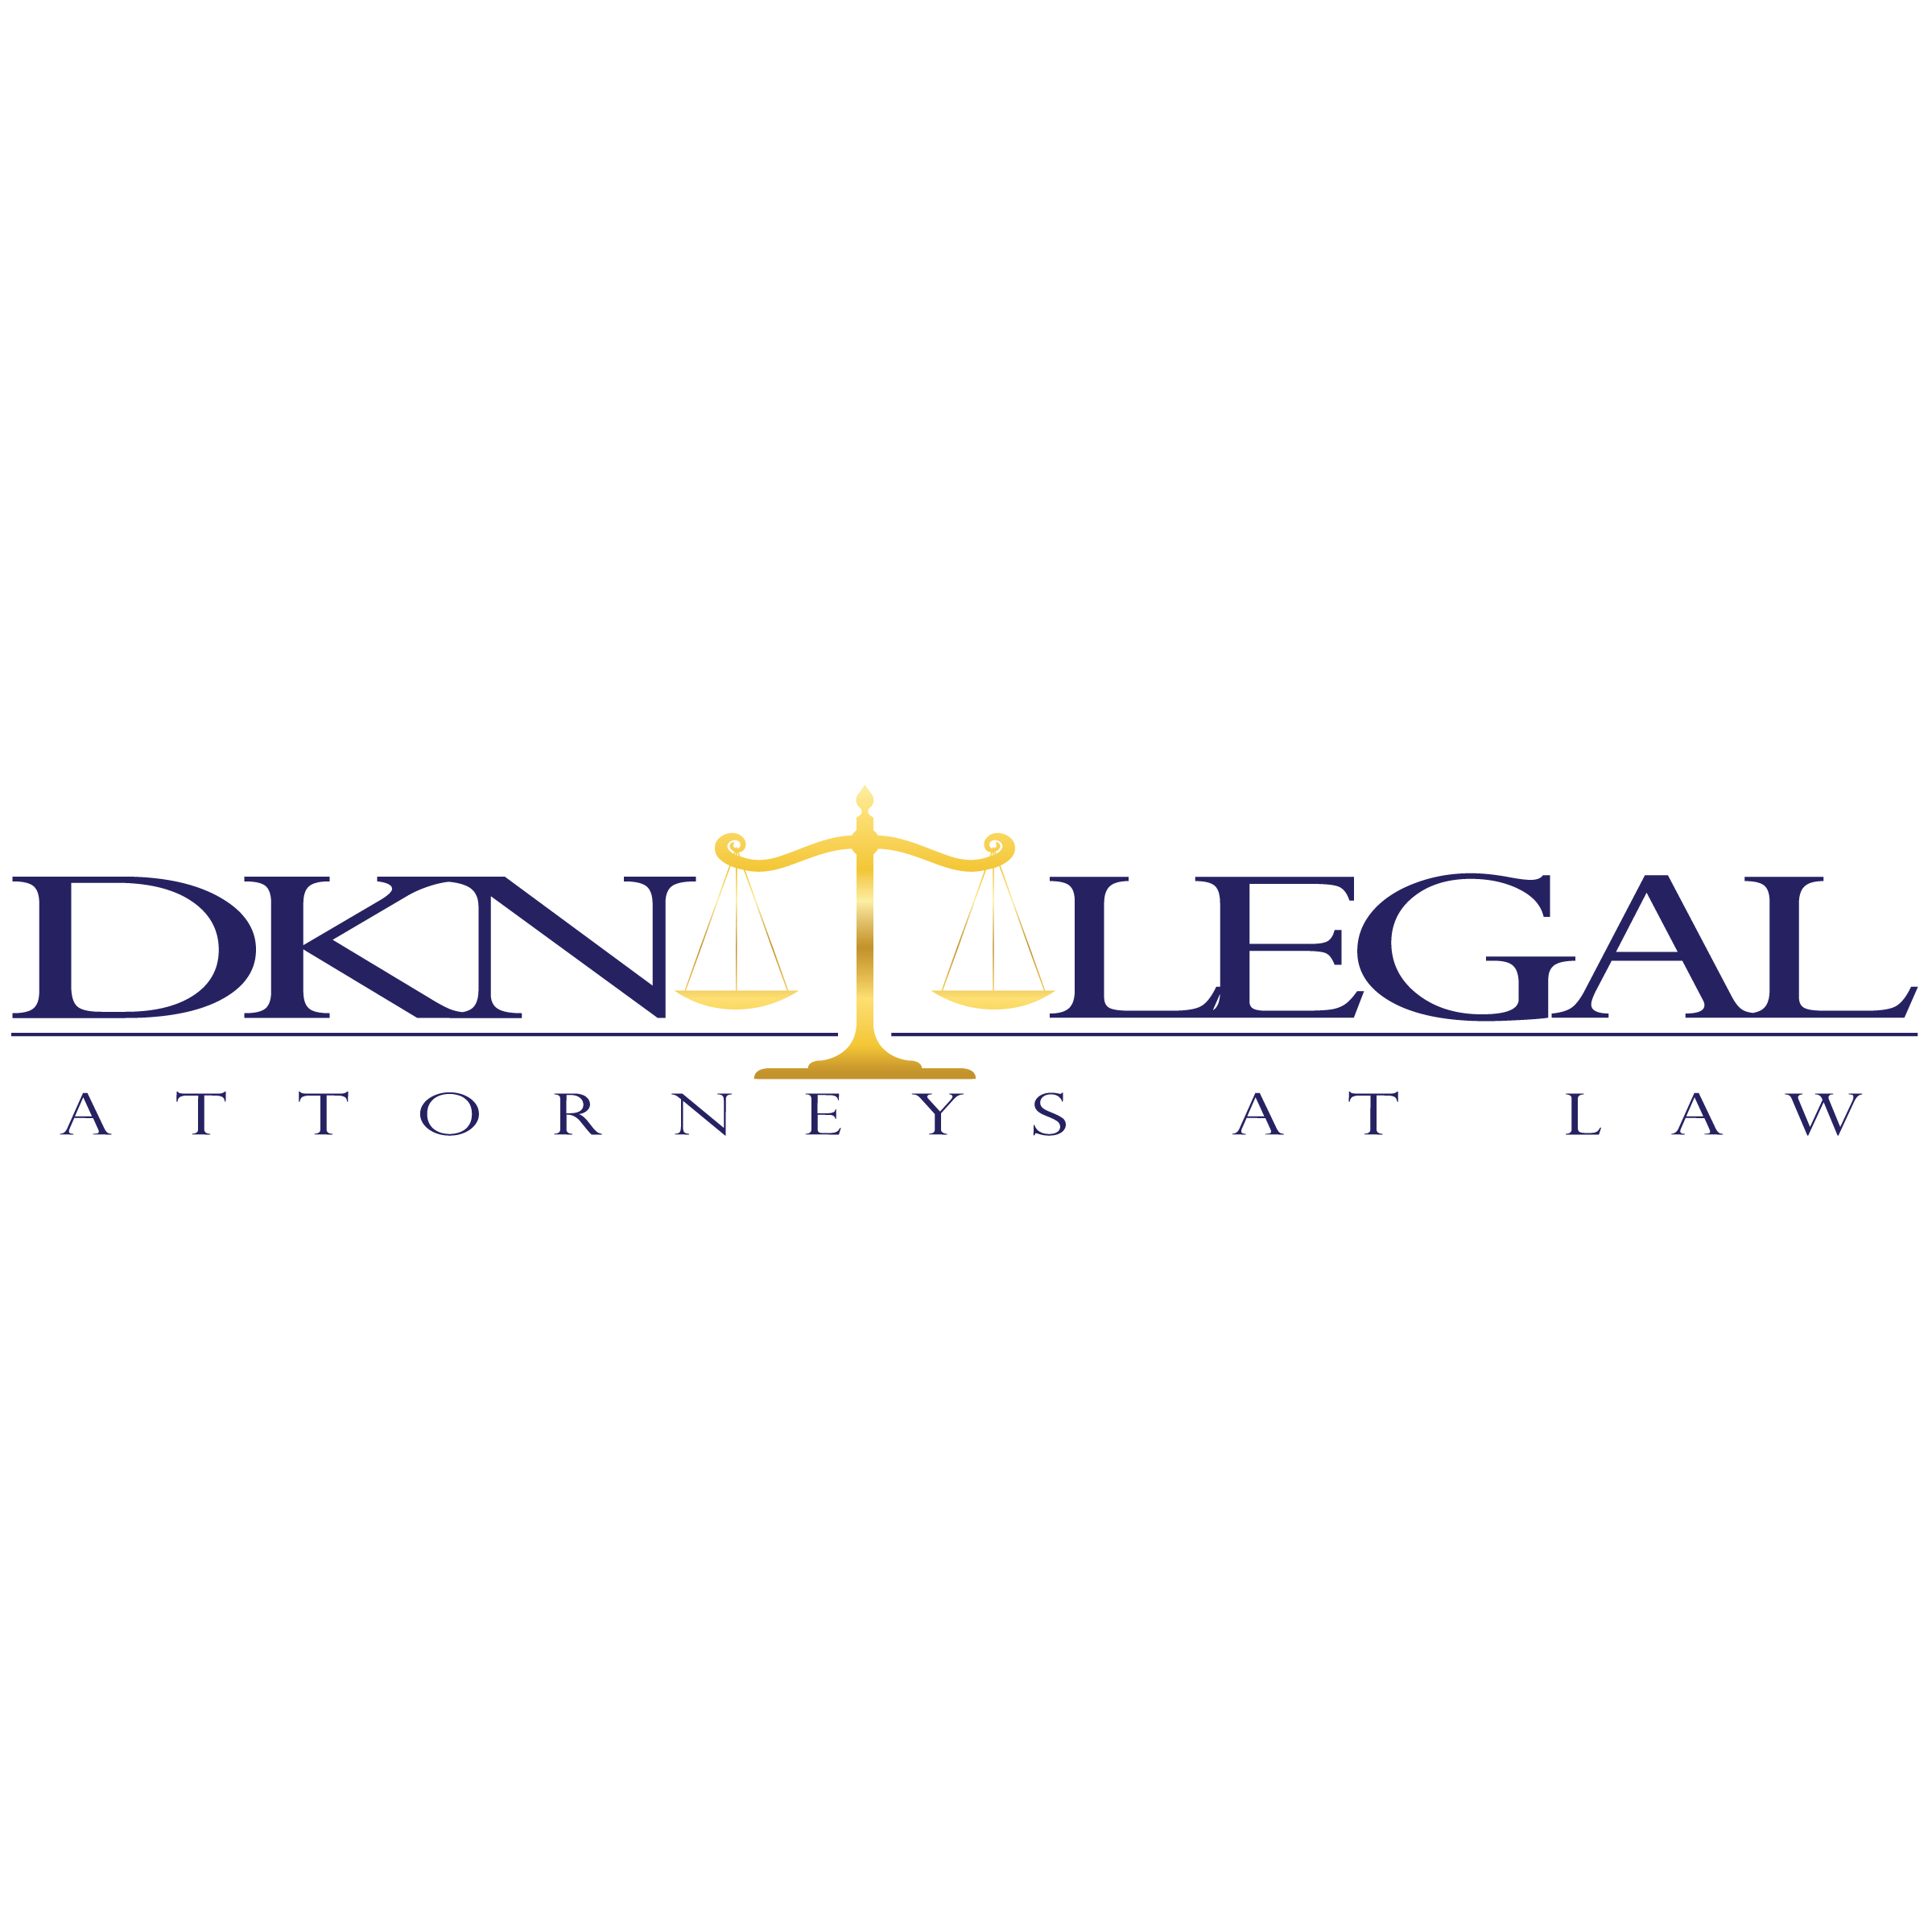 DKN Legal, PLLC